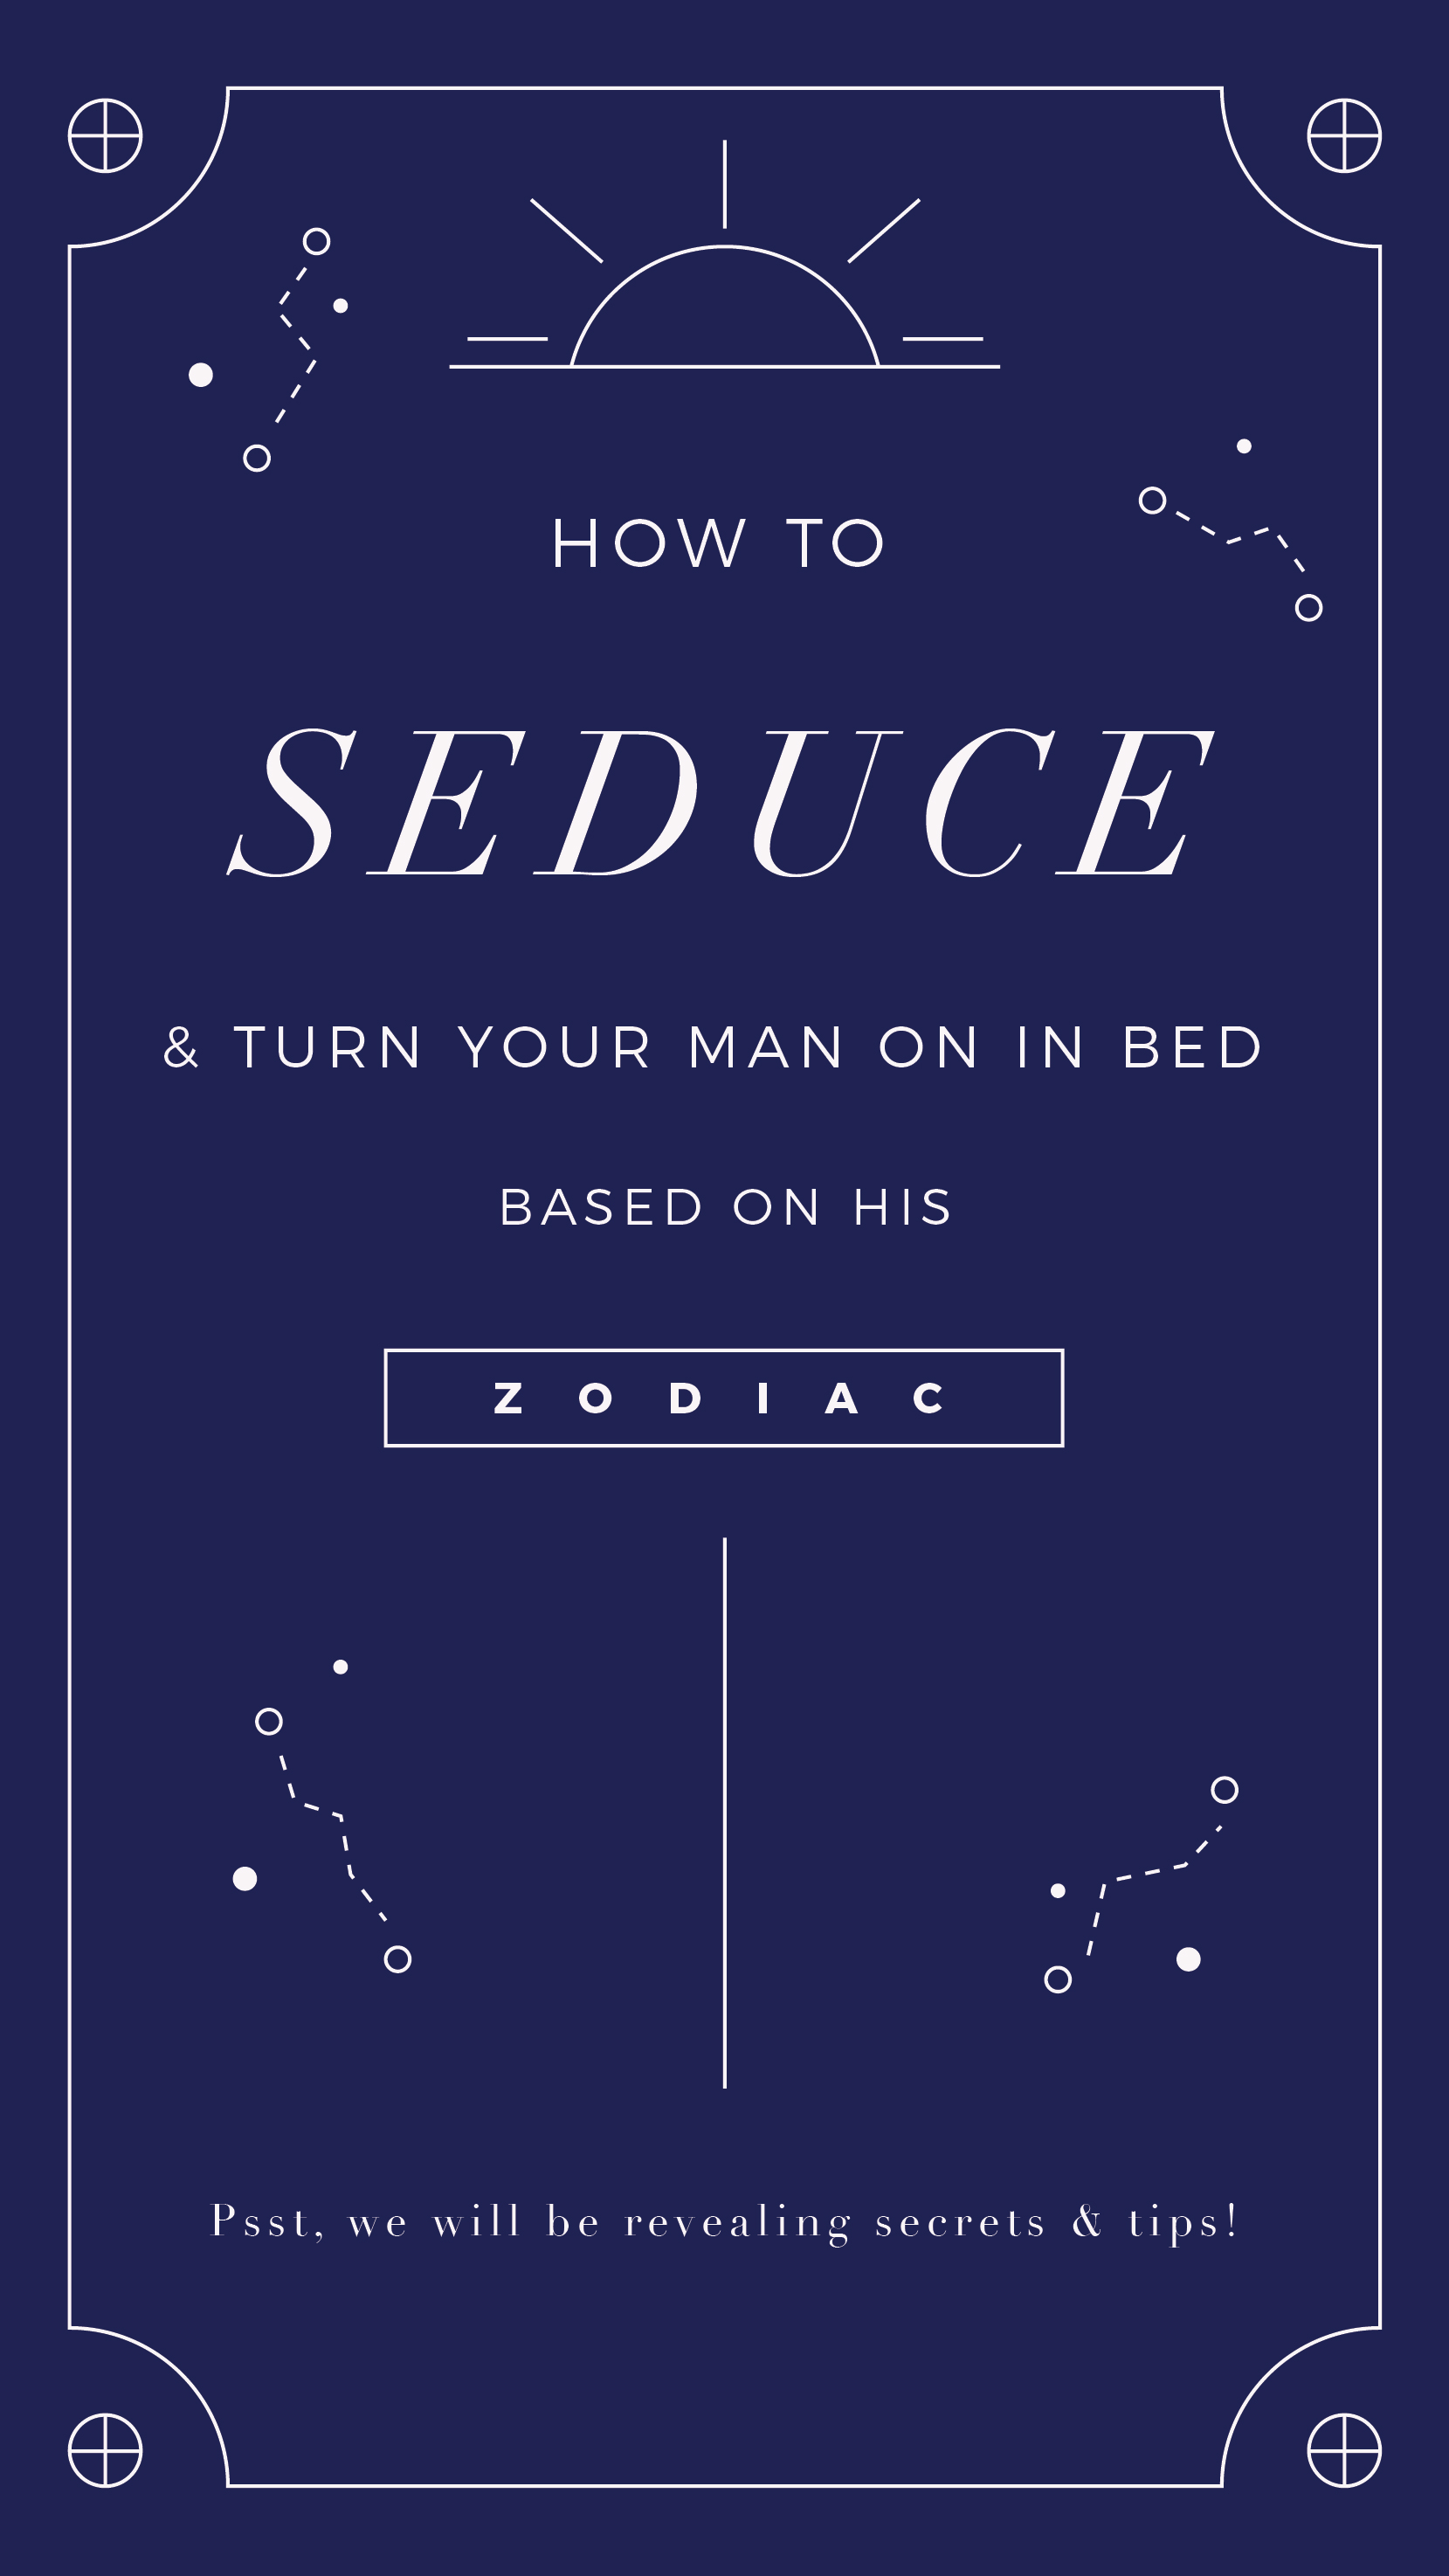 How to Seduce Your Man in Bed Based on His Zodiac image